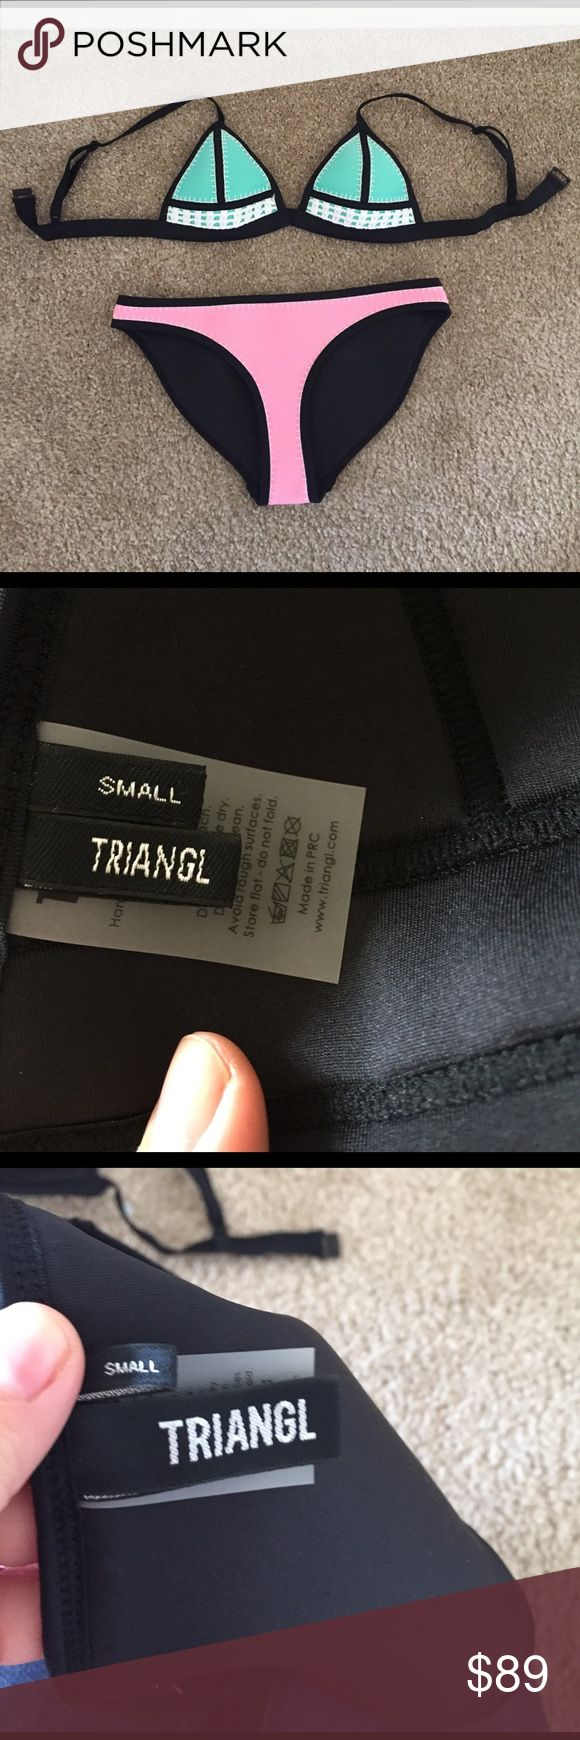 Triangl Swim Suit NWOT! This is a brand new suit just purchased. I don't just did not like the fit. Comes with bag! triangl swimwear Swim Bikinis